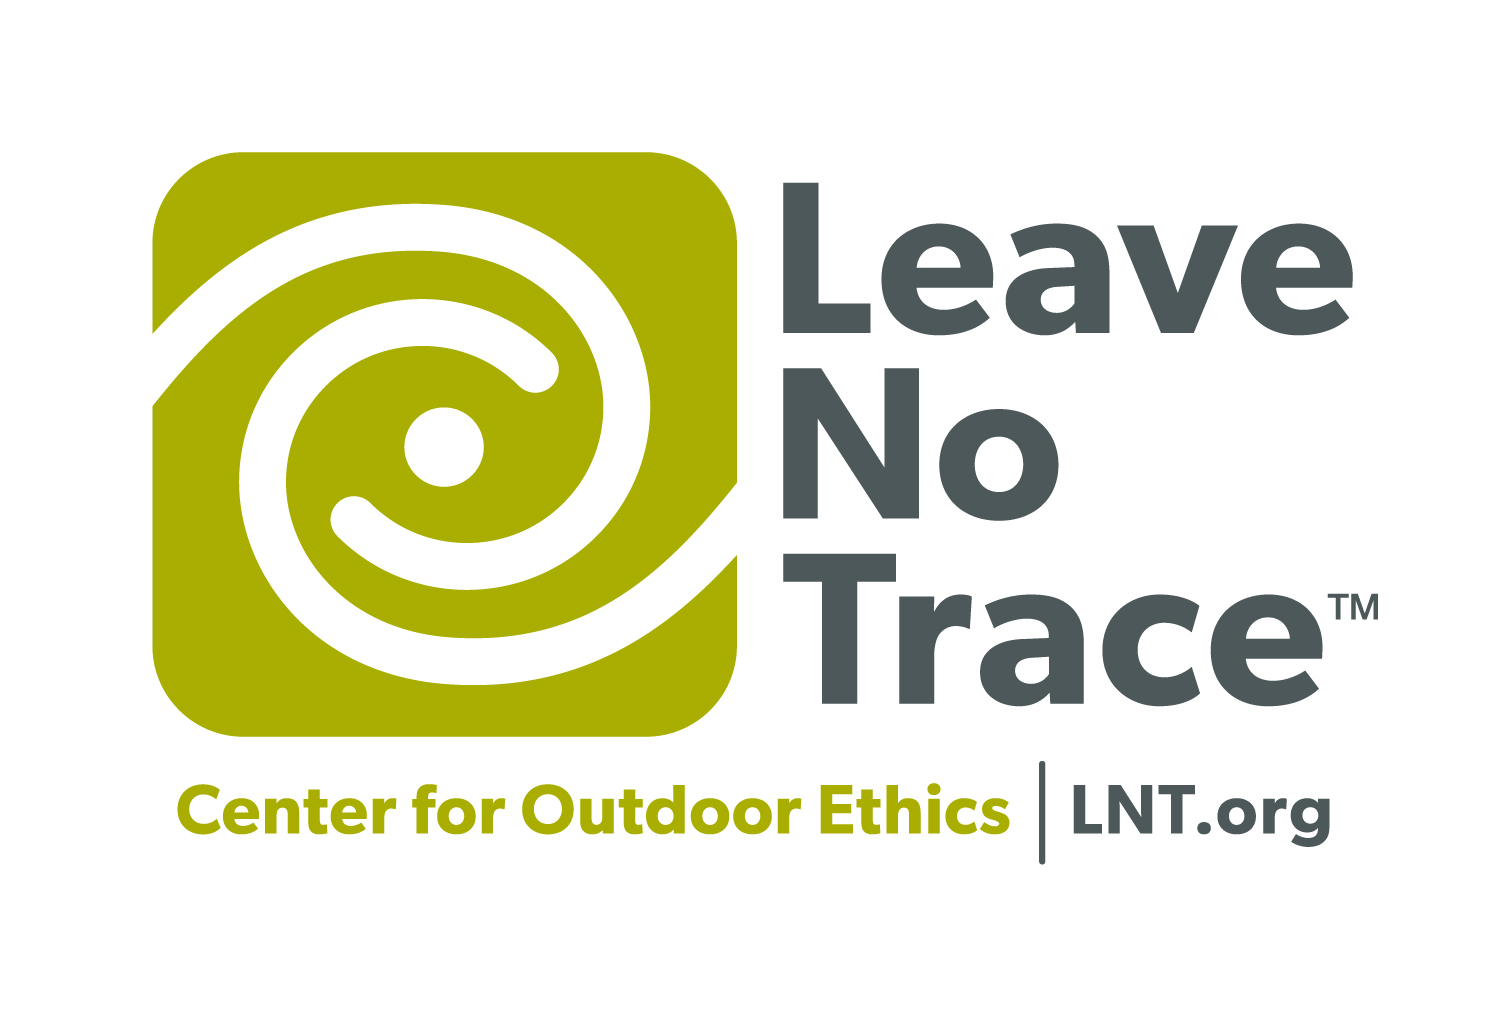 Leave-No-Trace_logo.jpg